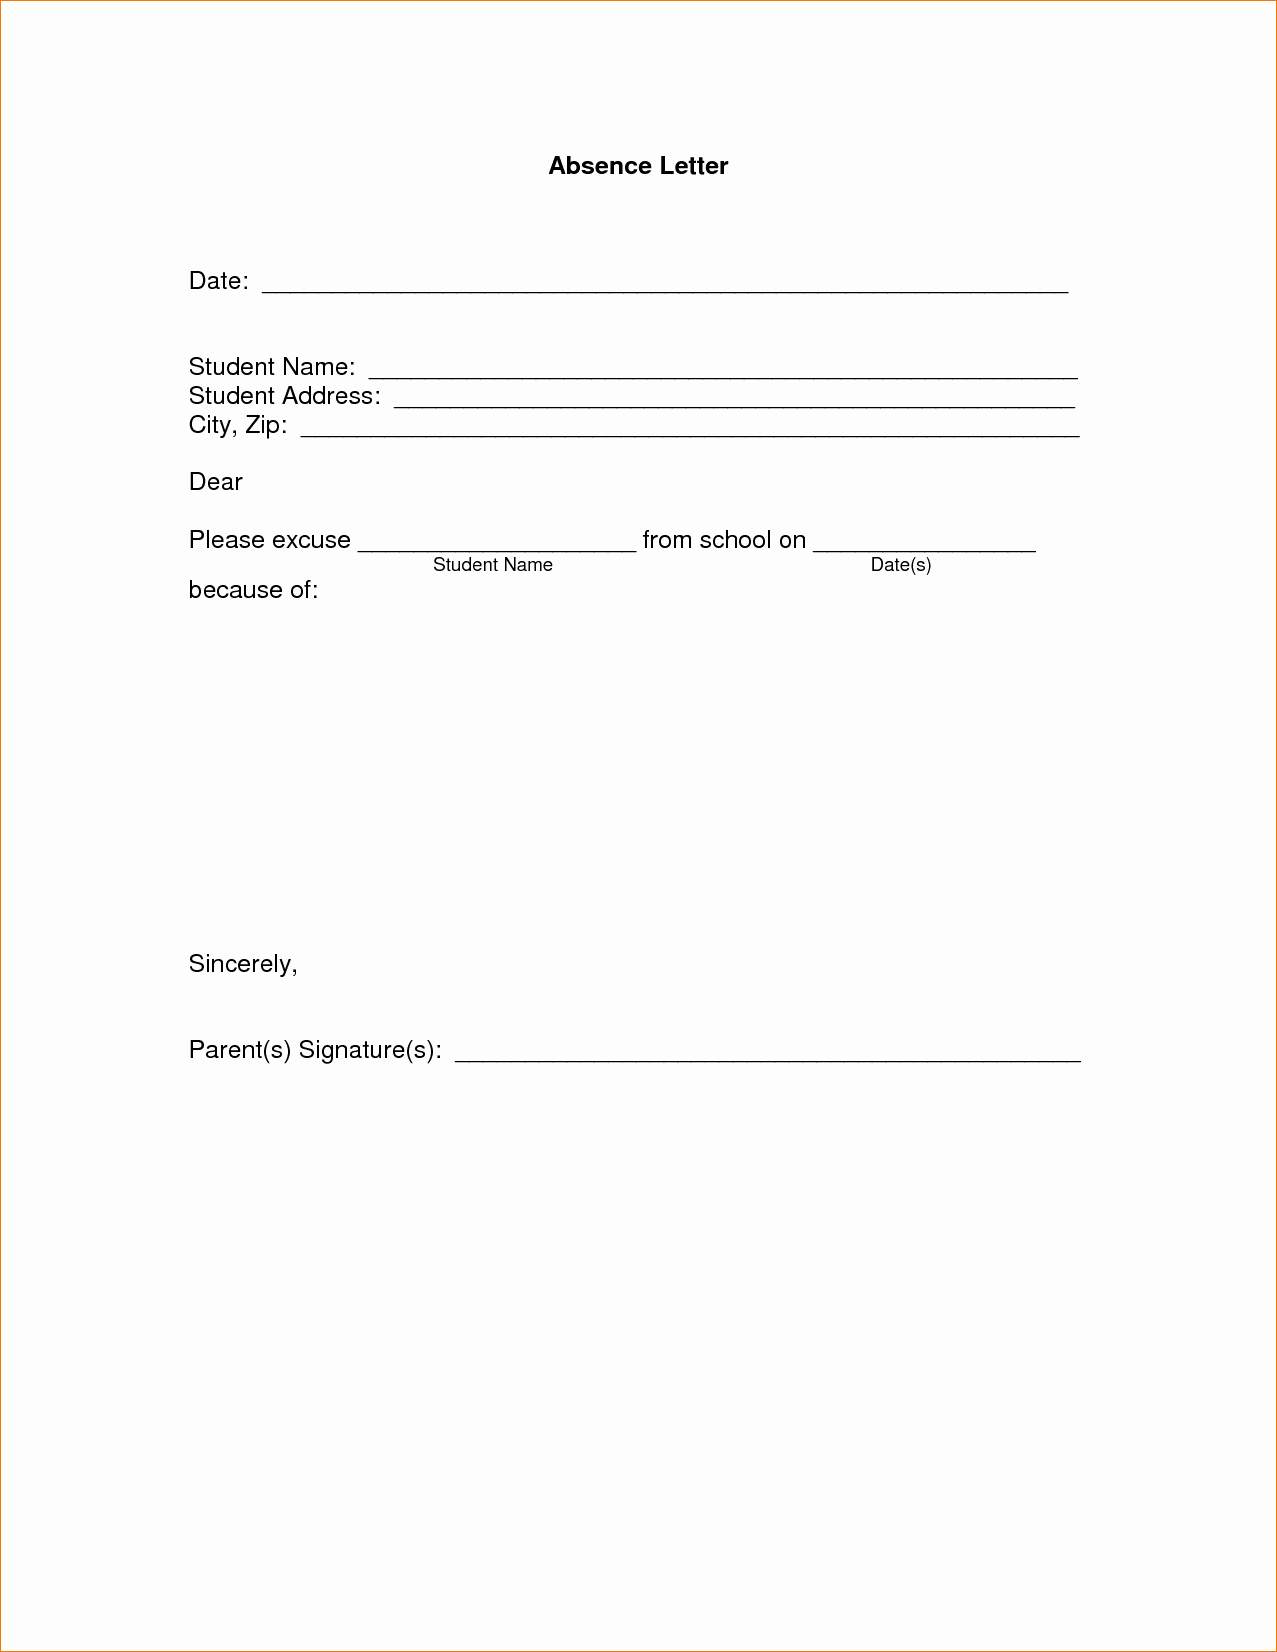 Letter Of Absent to School Elegant 11 Absence Excuse Letteragenda Template Sample